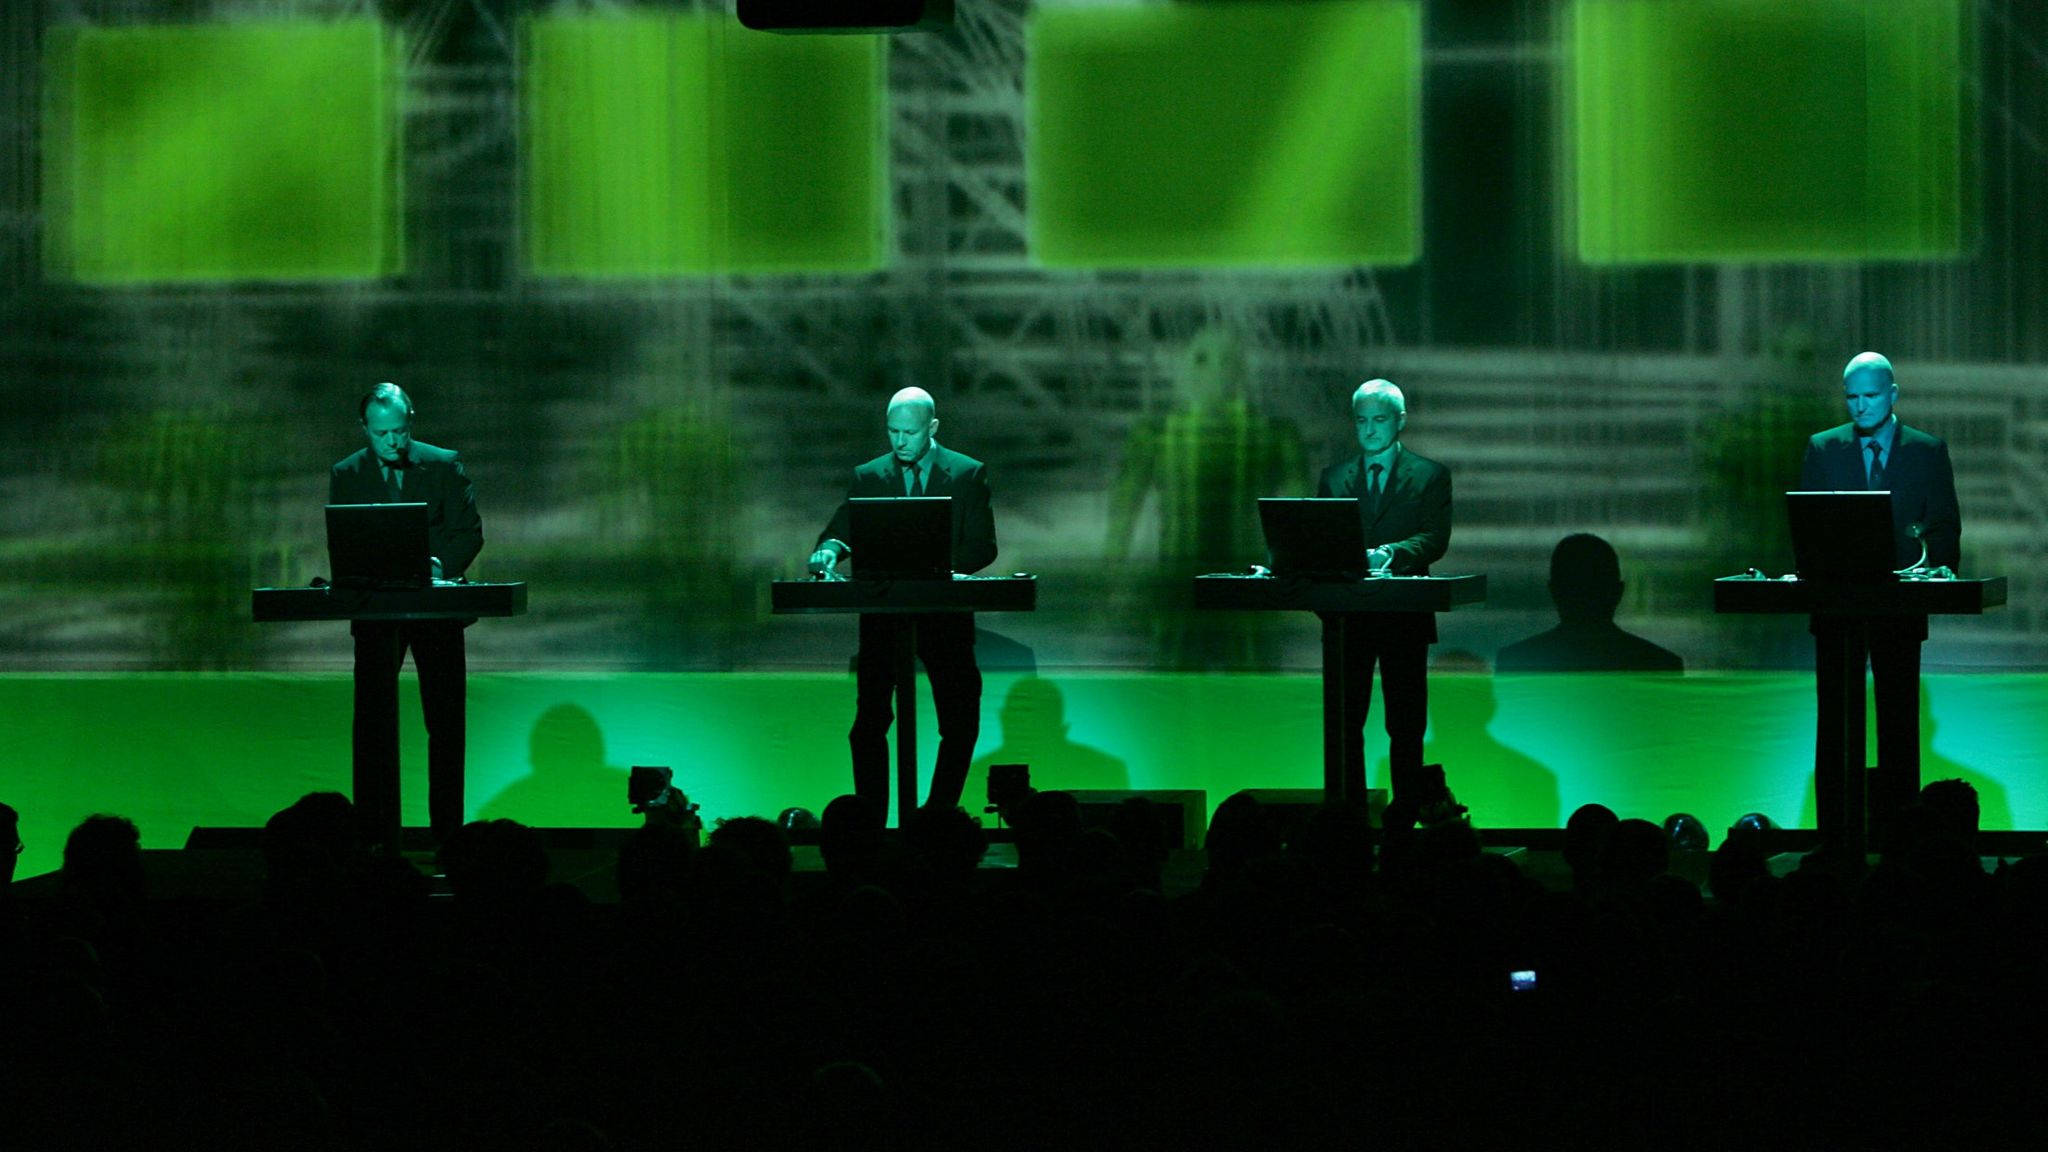 Kraftwerk became known for their distinctive live visuals as well as the music